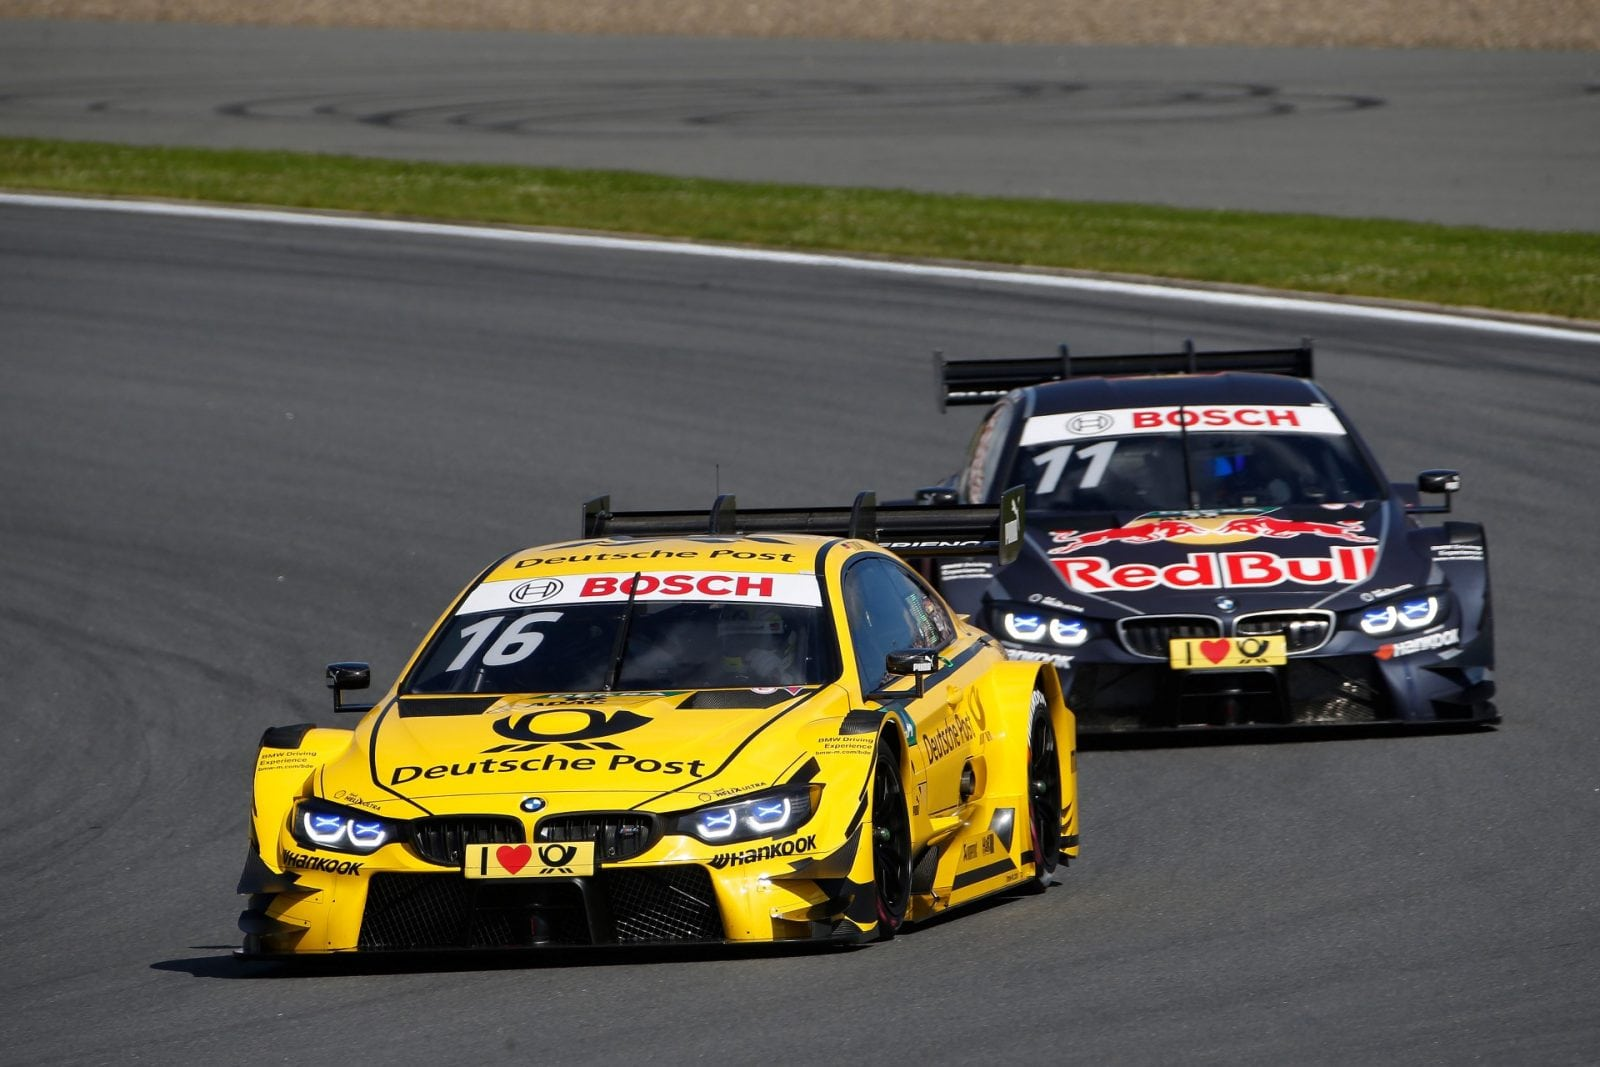 Moscow (RUS) 23th July 2017. BMW Motorsport, Race 10, Timo Glock (GER) DEUTSCHE POST BMW M4 DTM and Marco Wittmann (GER) Red Bull BMW M4 DTM.